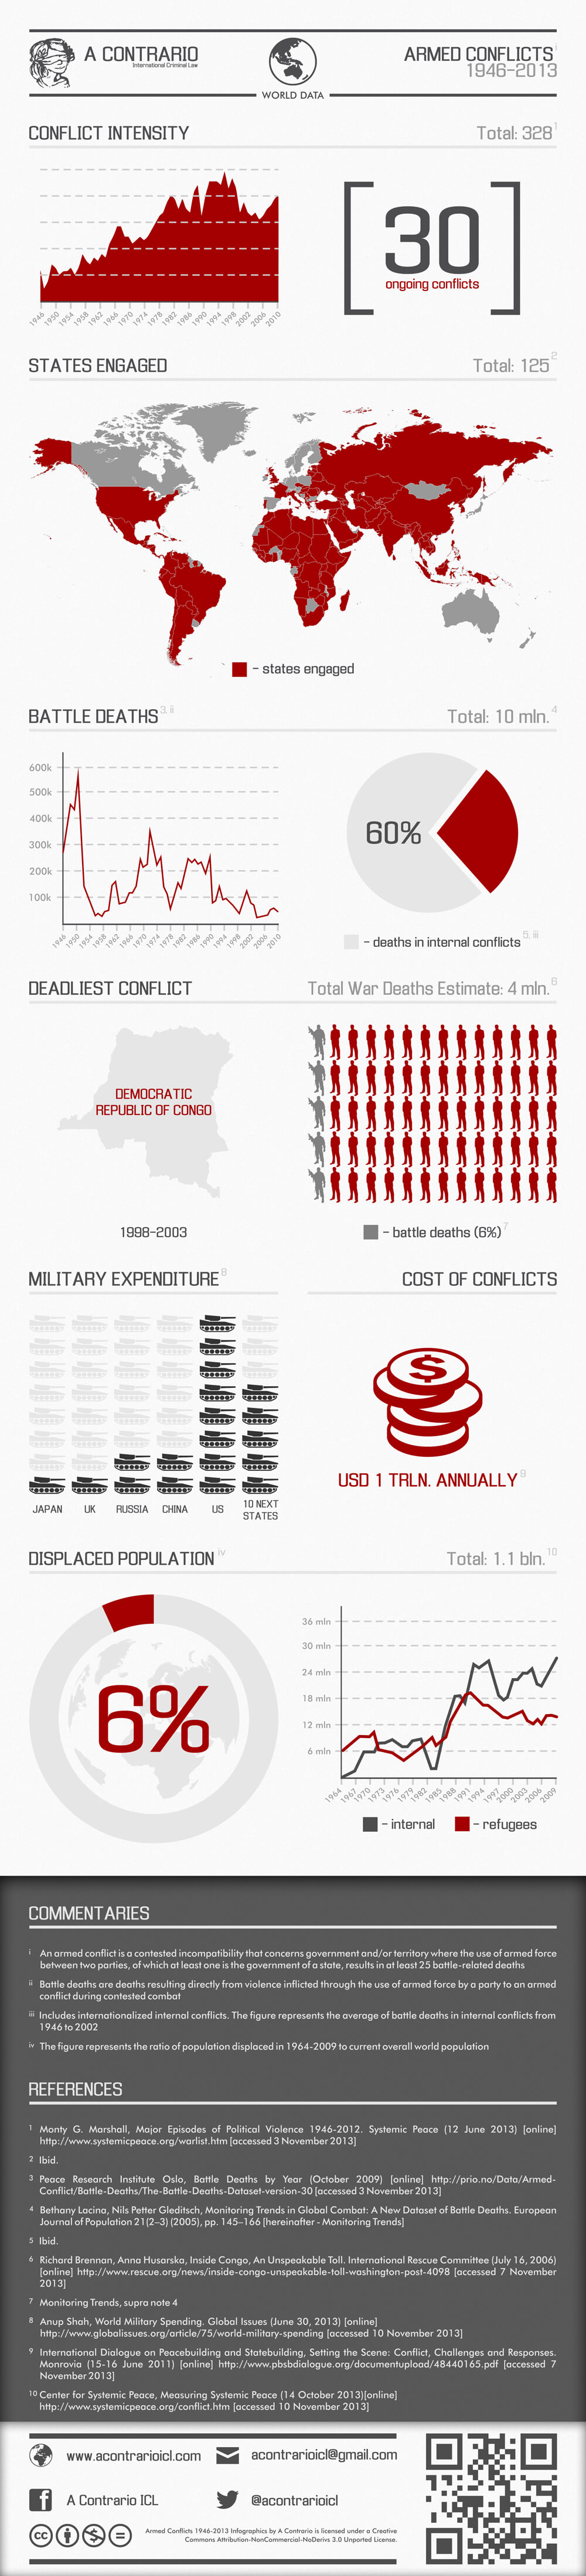 infographic-armed-conflicts